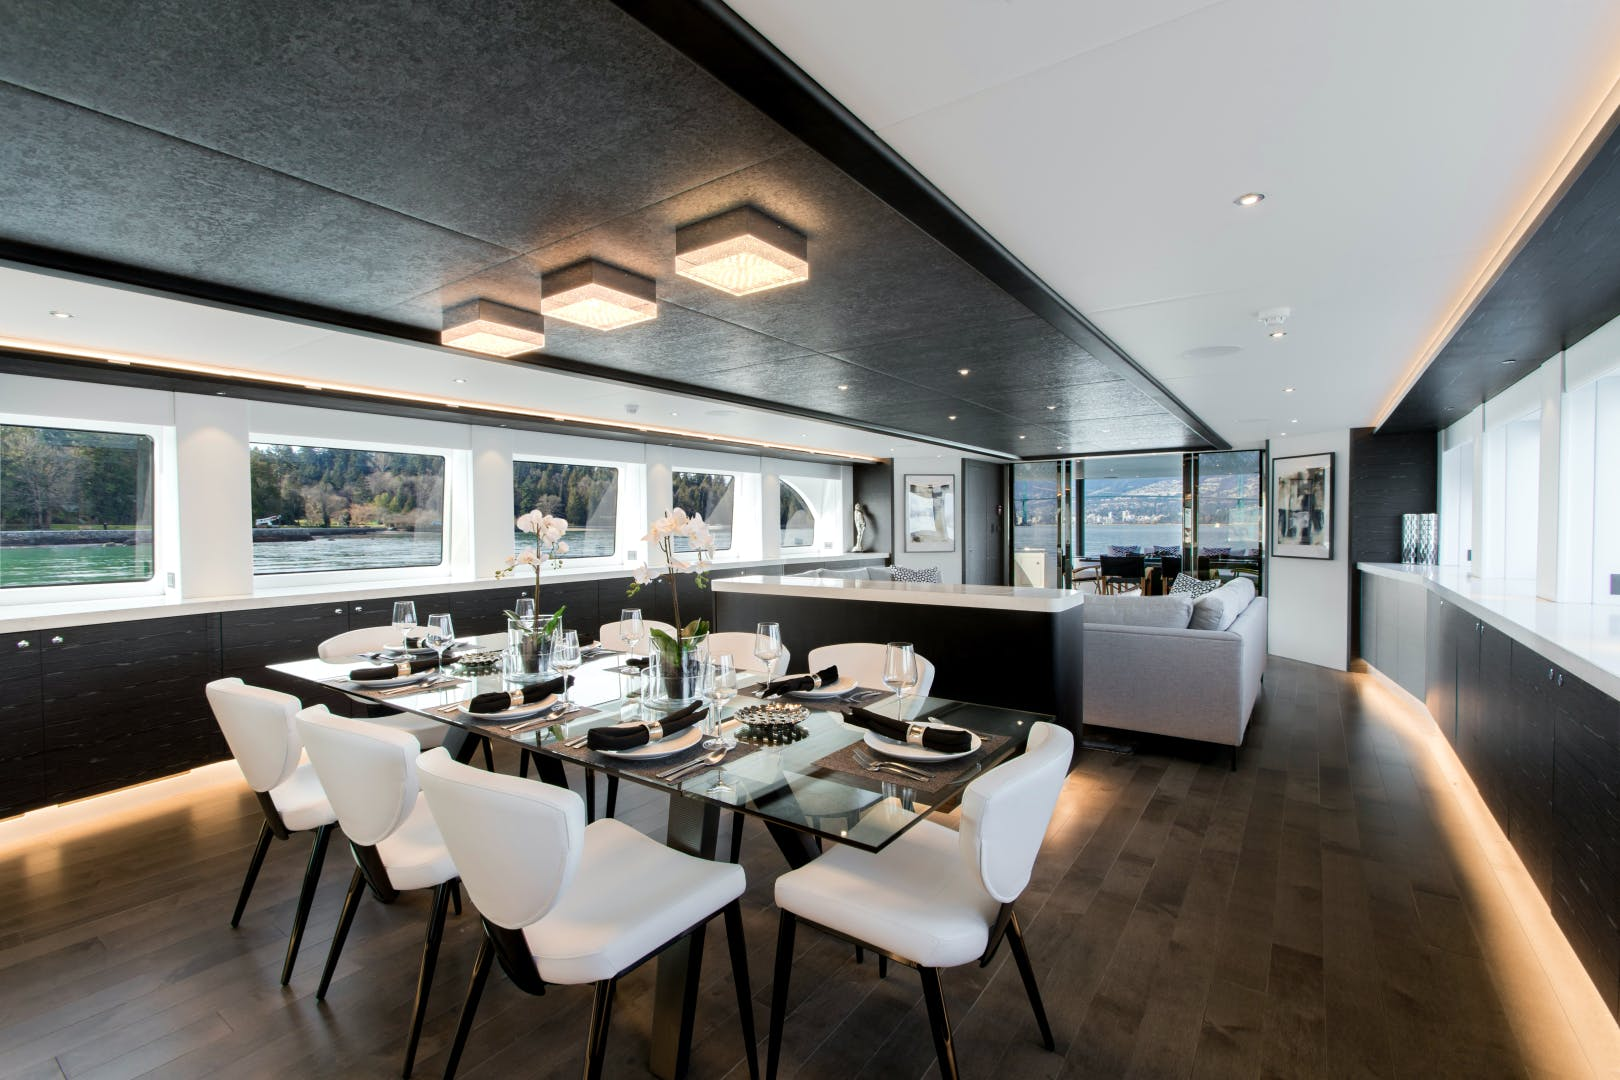 CRESCENt 117 Yacht for sale interior